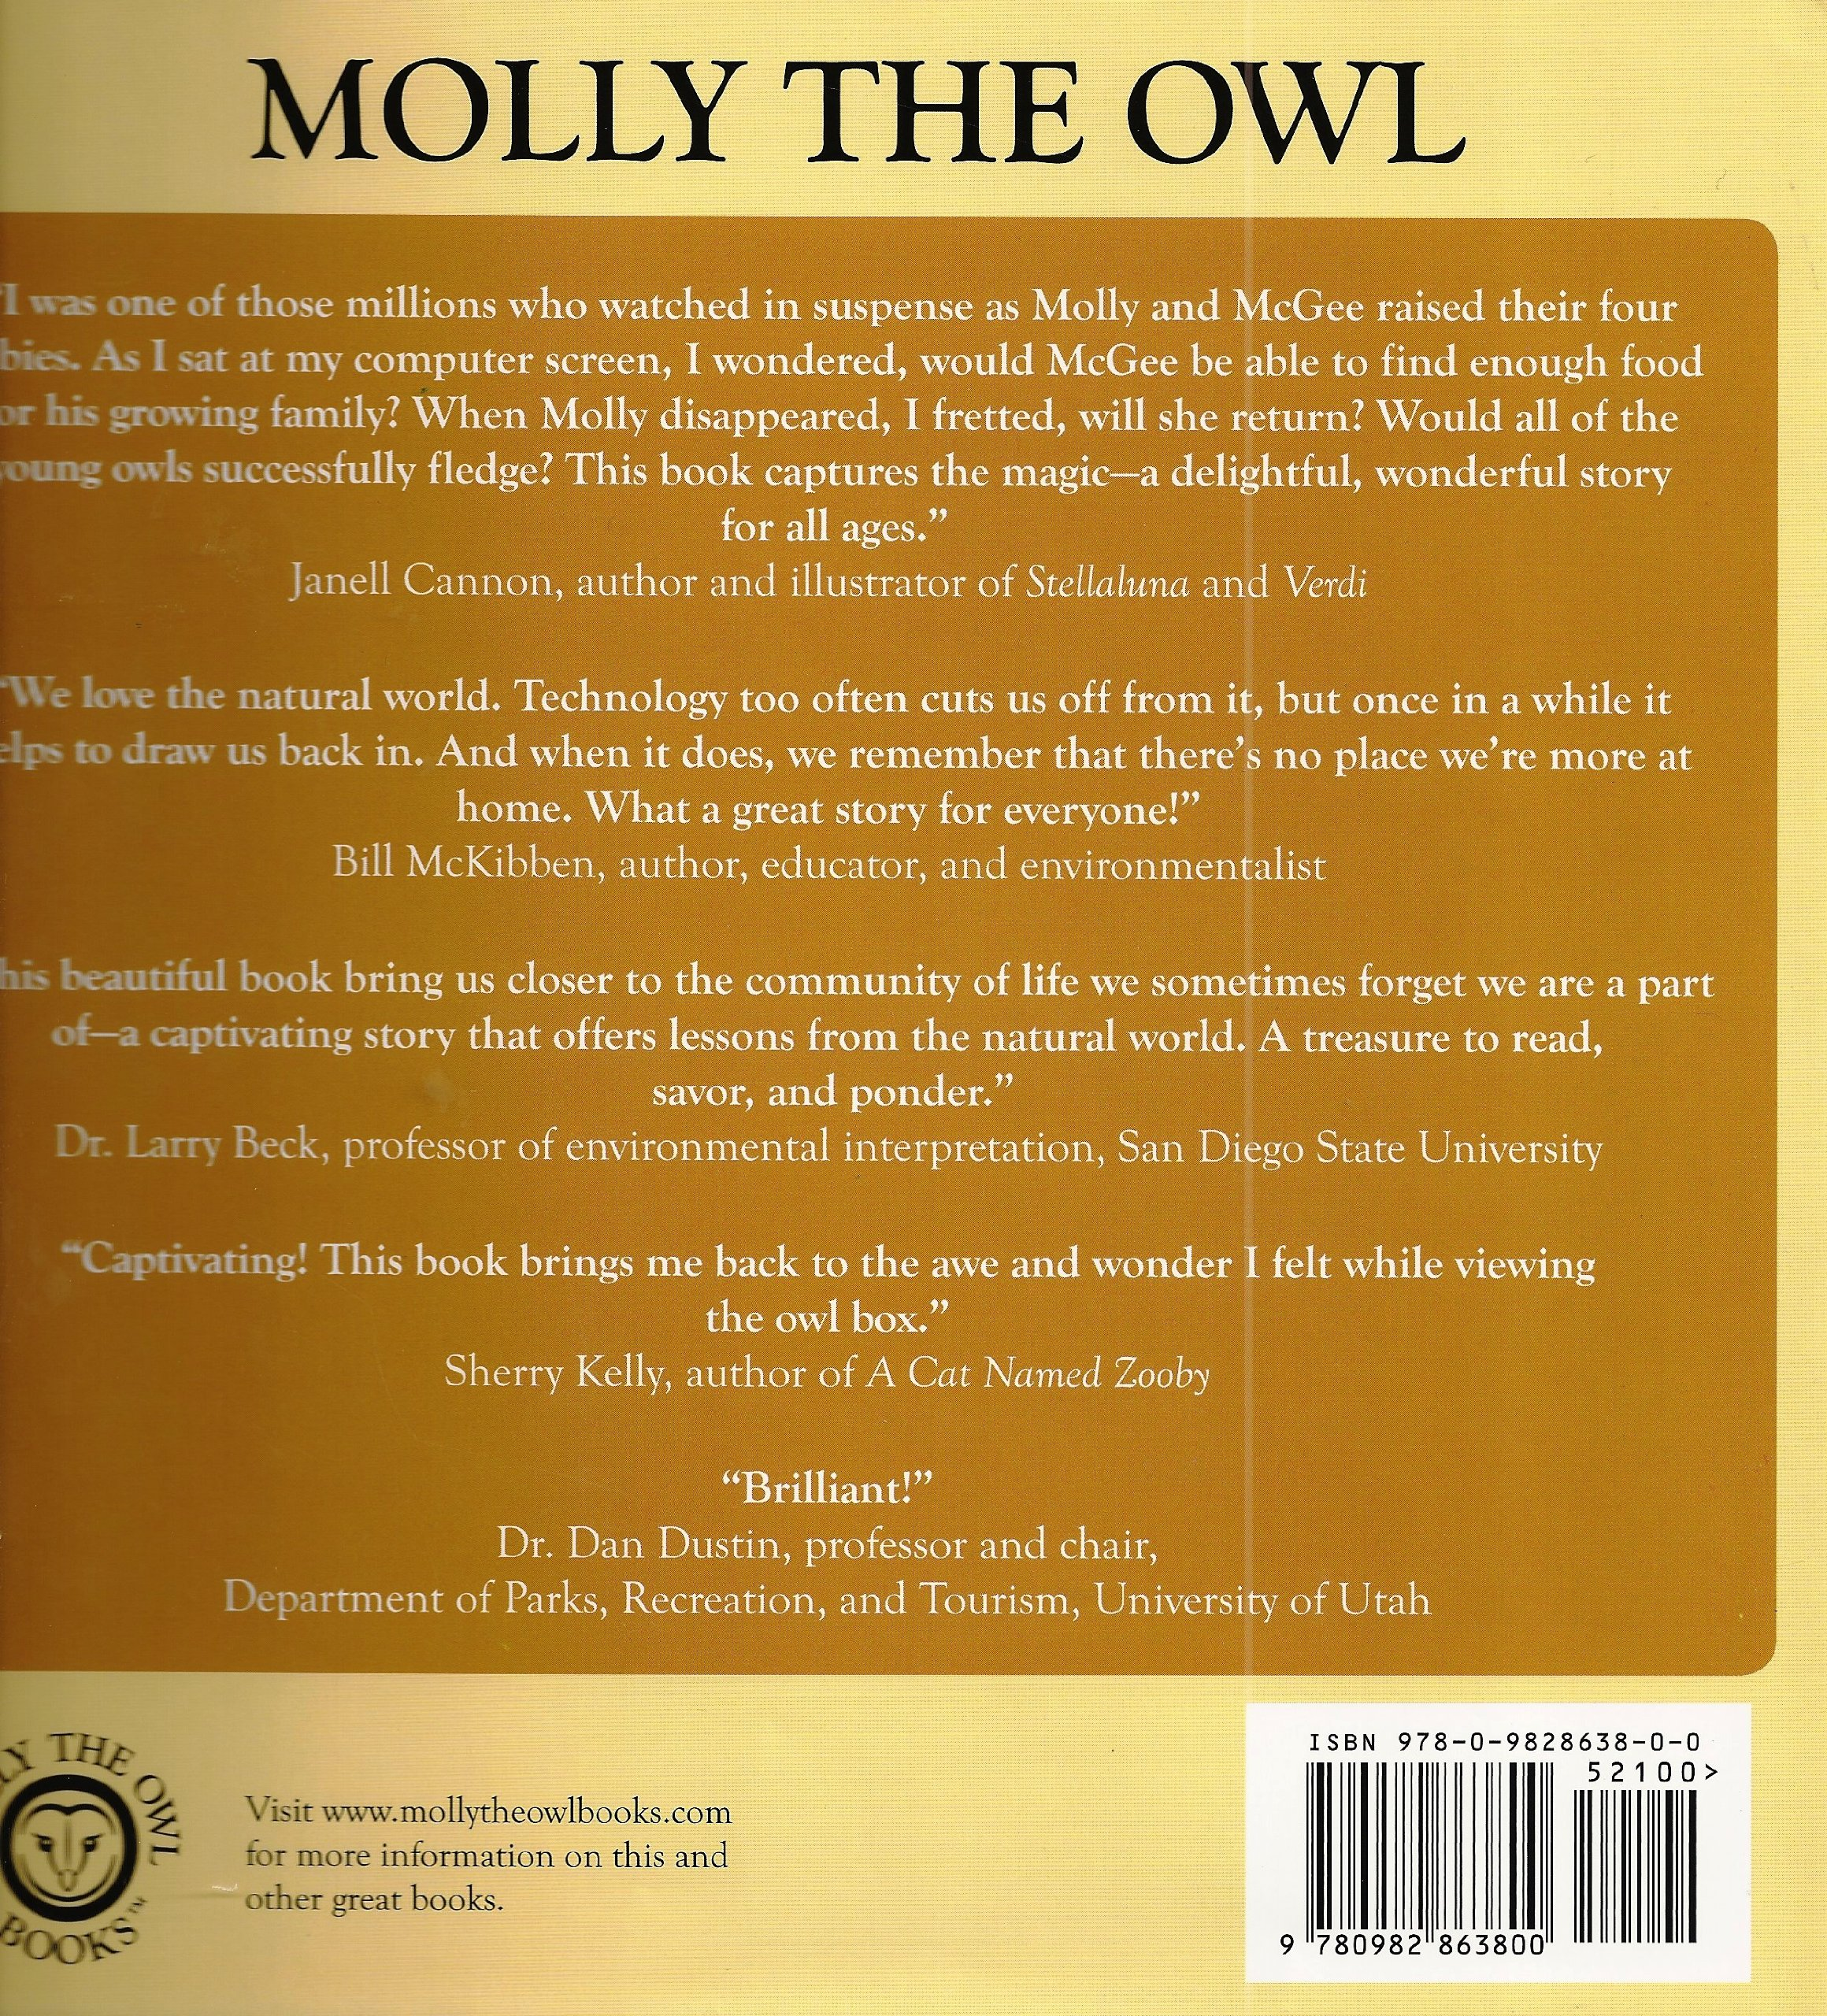 Molly The Owl True Story Of A Common Barn That Ends Up Being Not So After All Eric Blehm Christopher Adams 9780982863800 Amazon